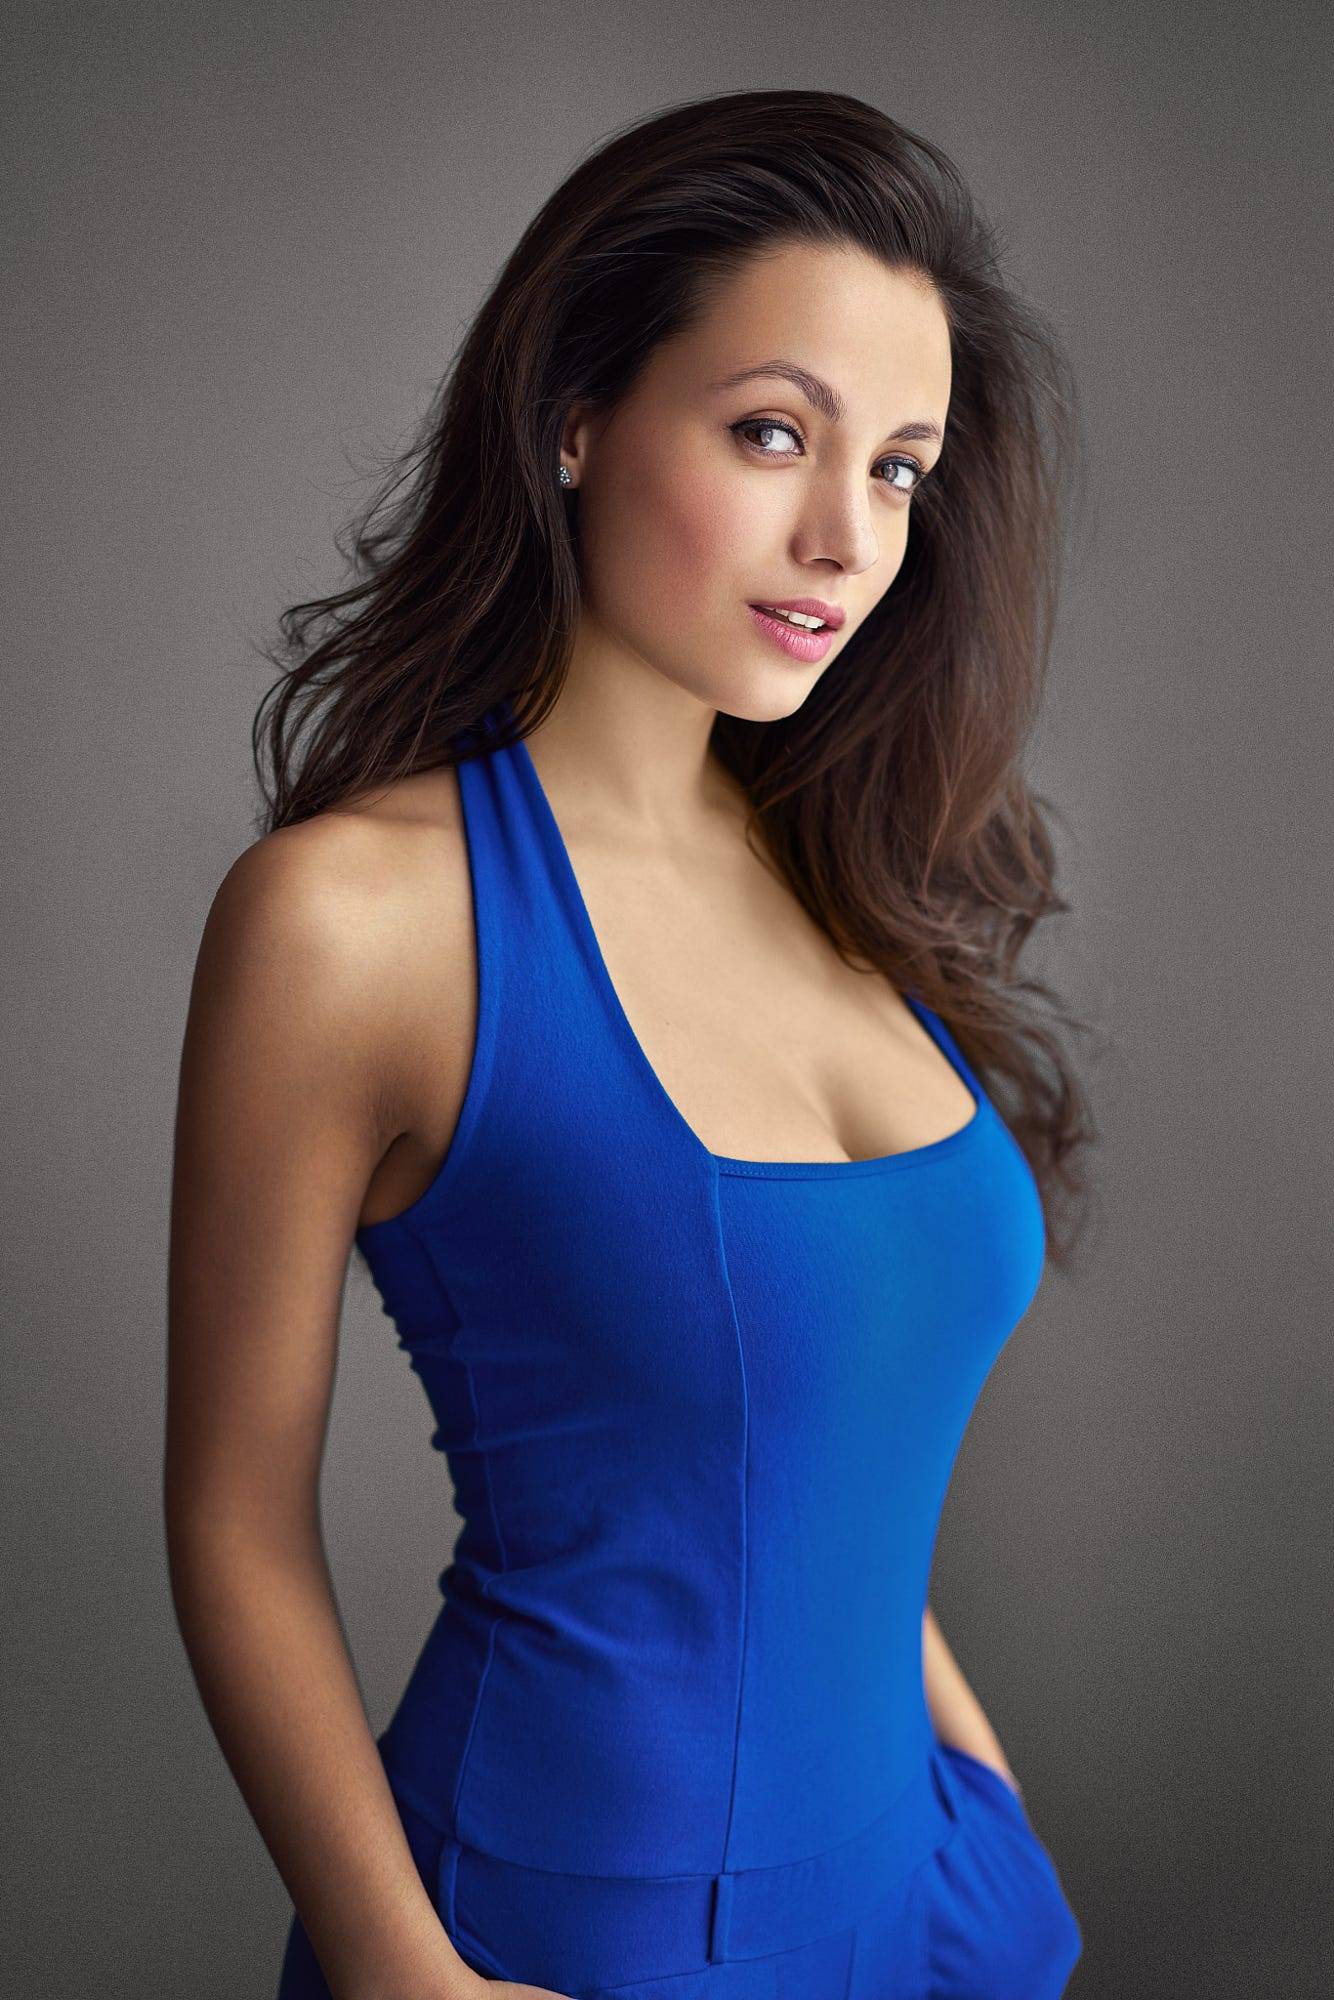 People 1334x2000 women brunette long hair wavy hair looking at viewer dress blue clothing cleavage blue dress simple background smiling make up eyeliner blush lipstick jewelry earring hands in pockets blue clothes Tereza Dušková czech Czech women